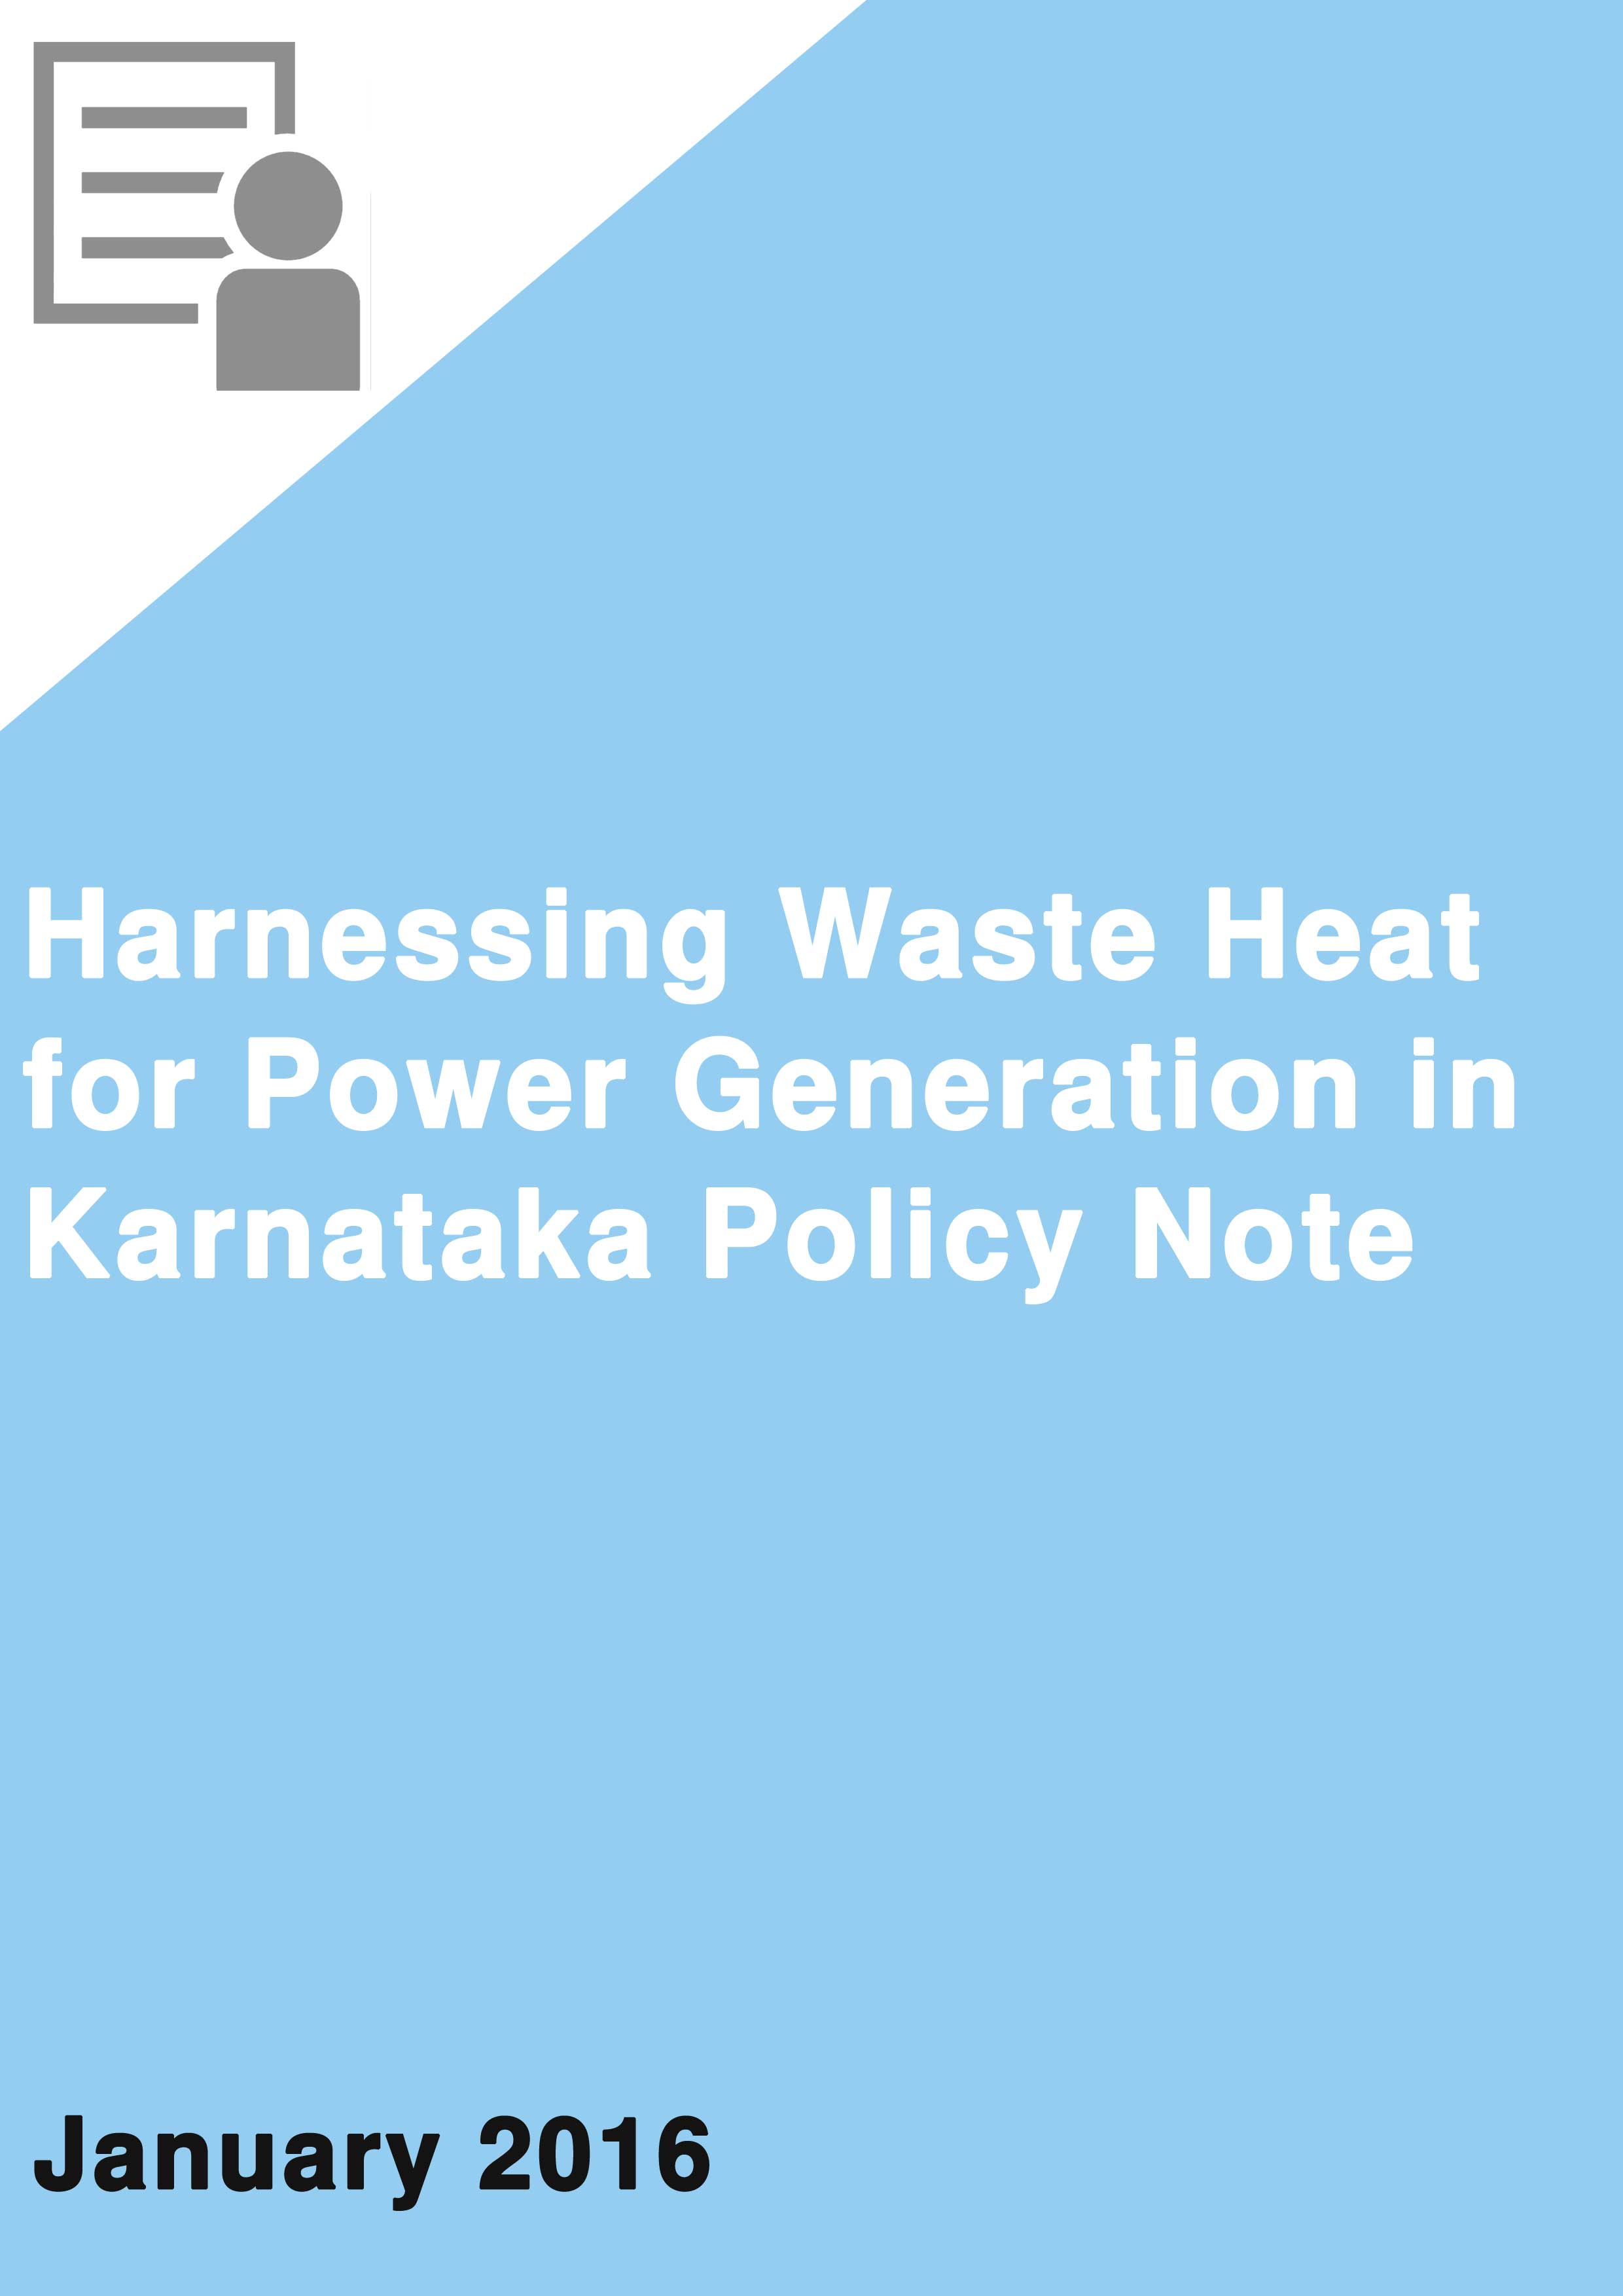 Harnessing Waste Heat for Power Generation in Karnataka